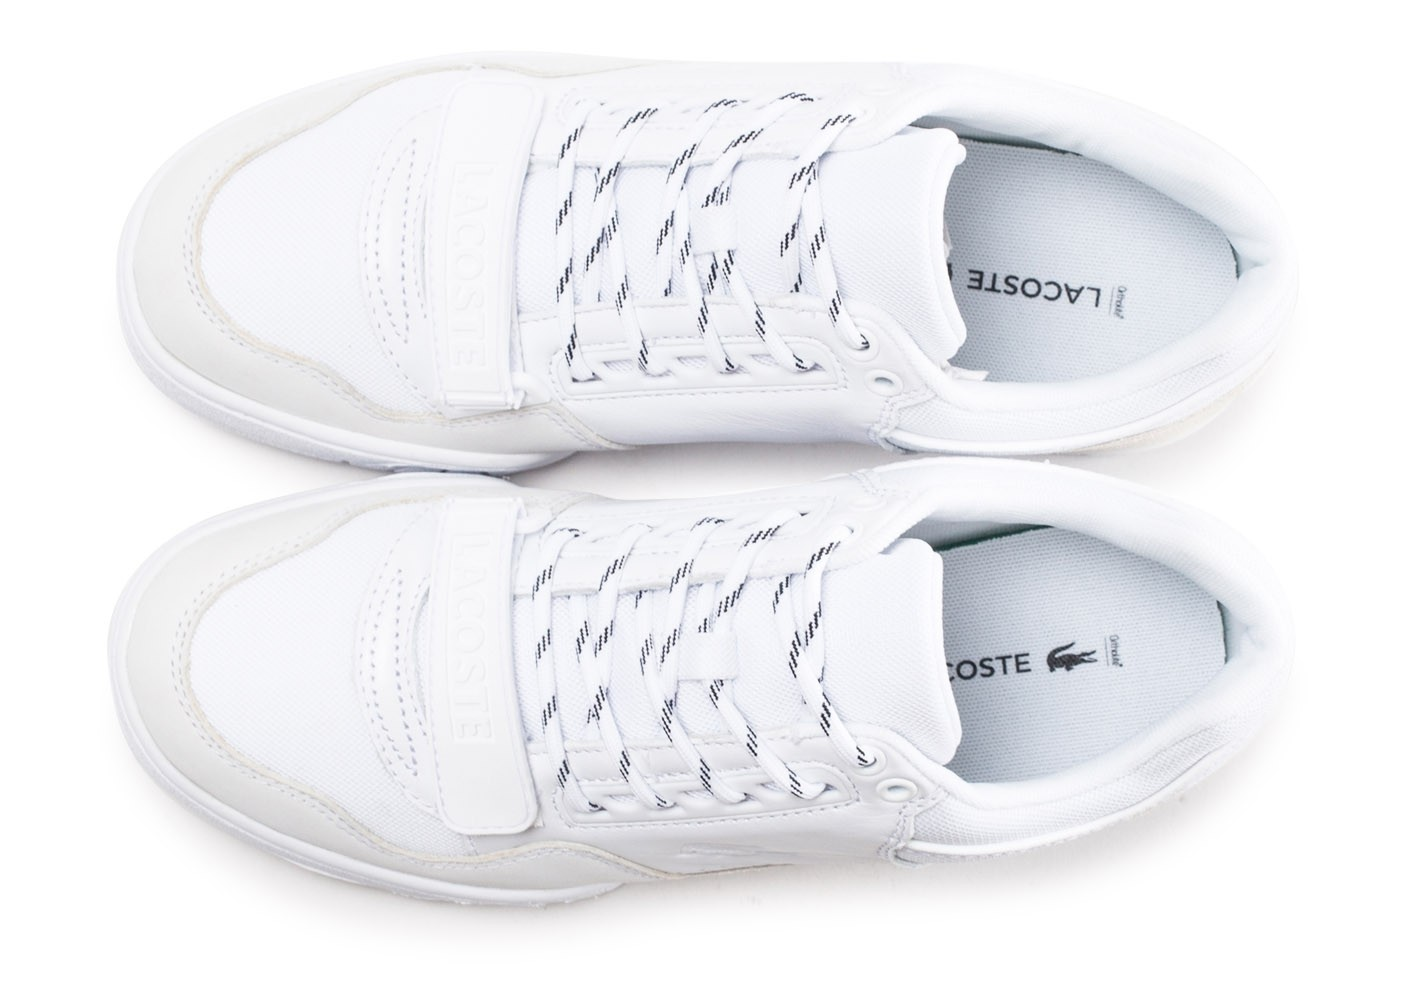 Blanche Baskets Homme Chausport Lacoste Missouri Chaussures I7vgybfY6